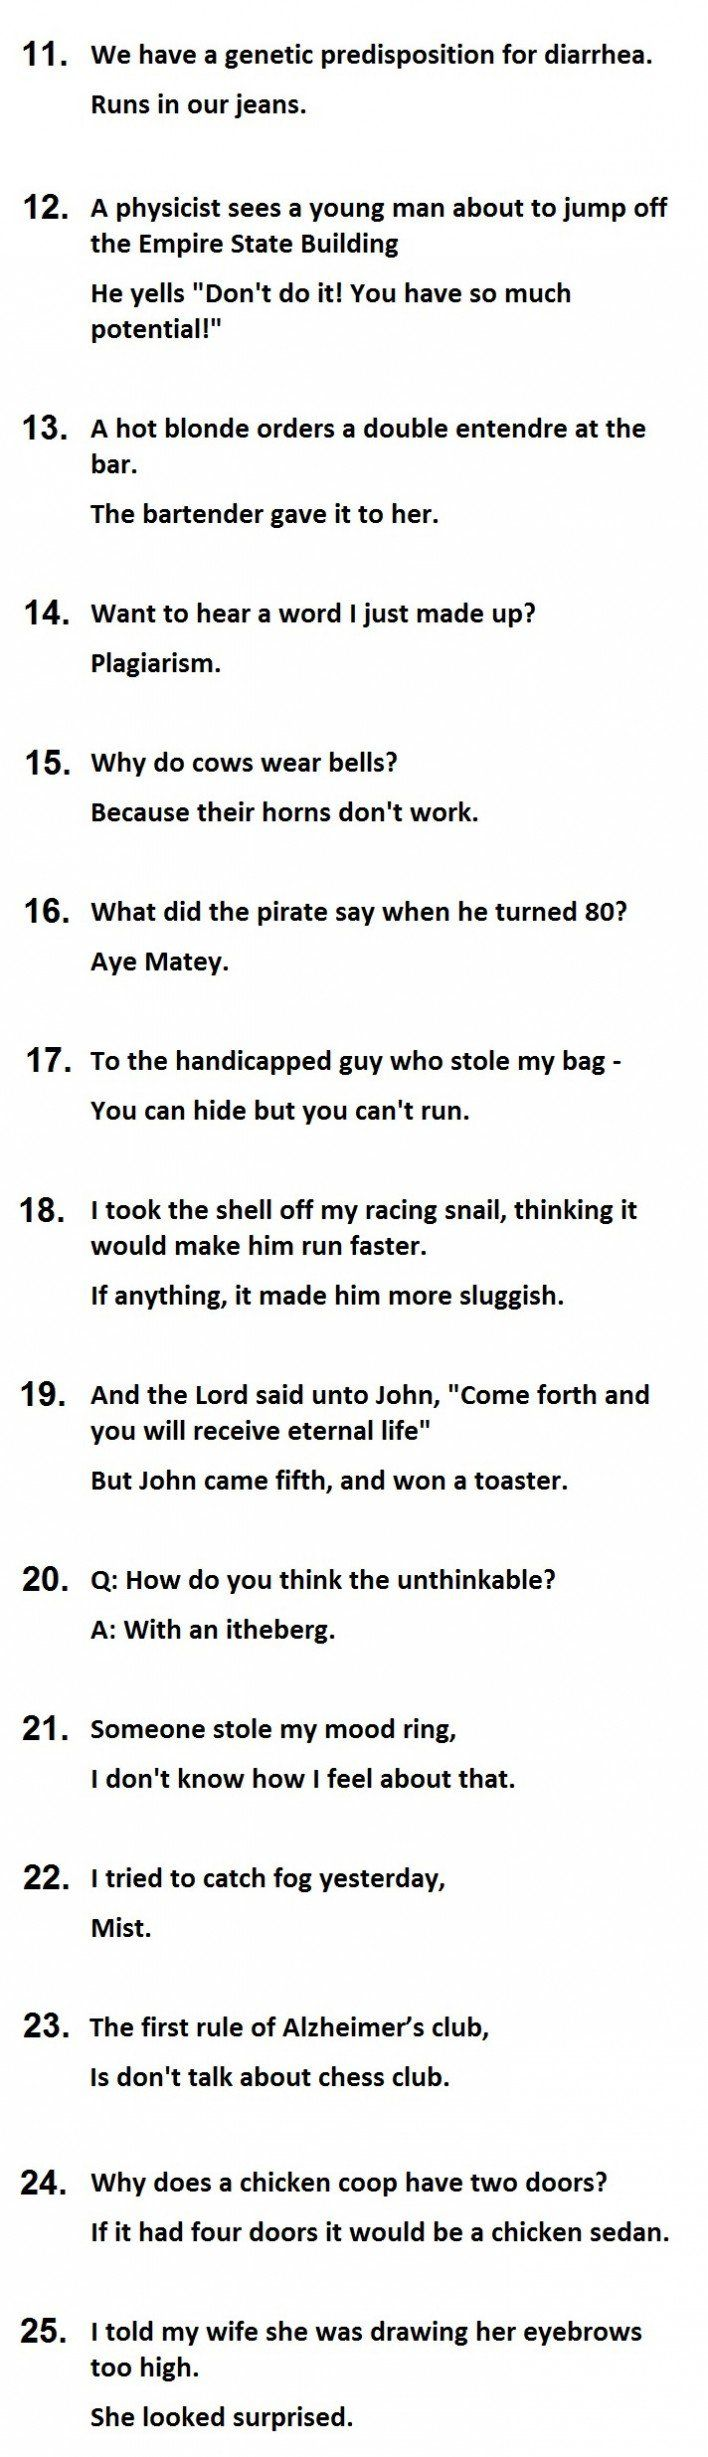 Best One Line Jokes Ideas On Pinterest Funny Liners One - The 22 most hilarious two line jokes ever 7 killed me